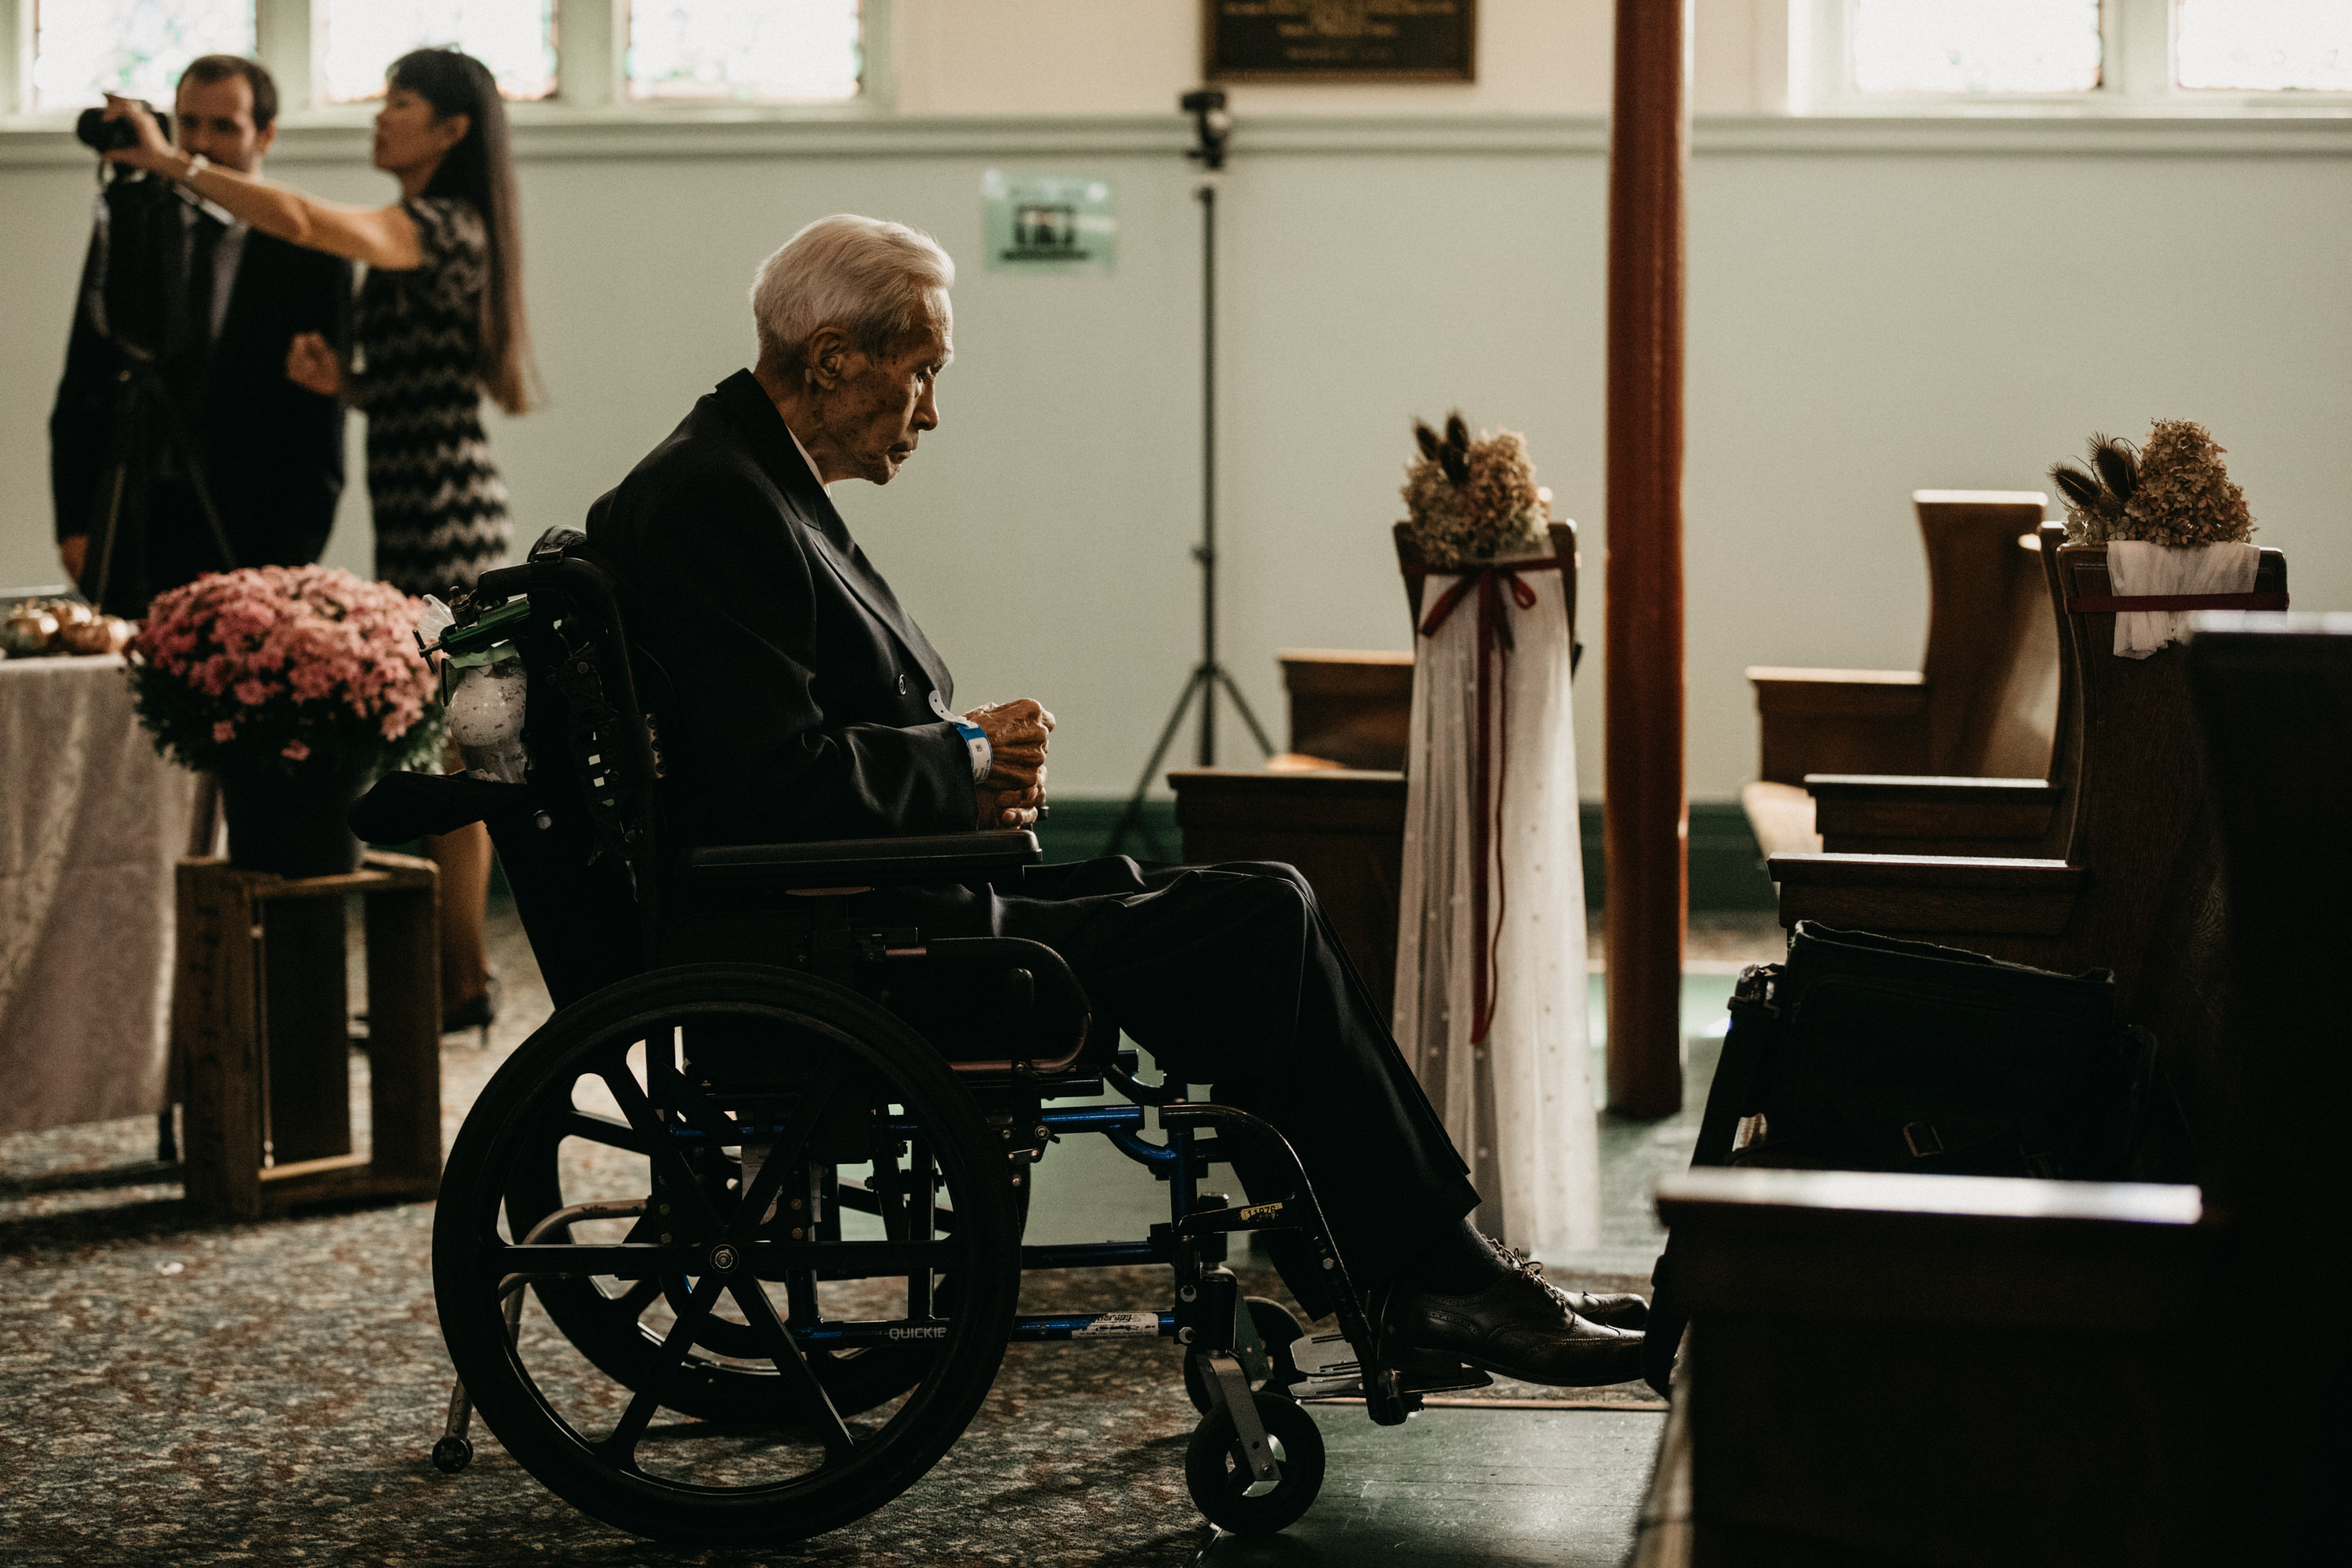 grampa in wheelchair at church